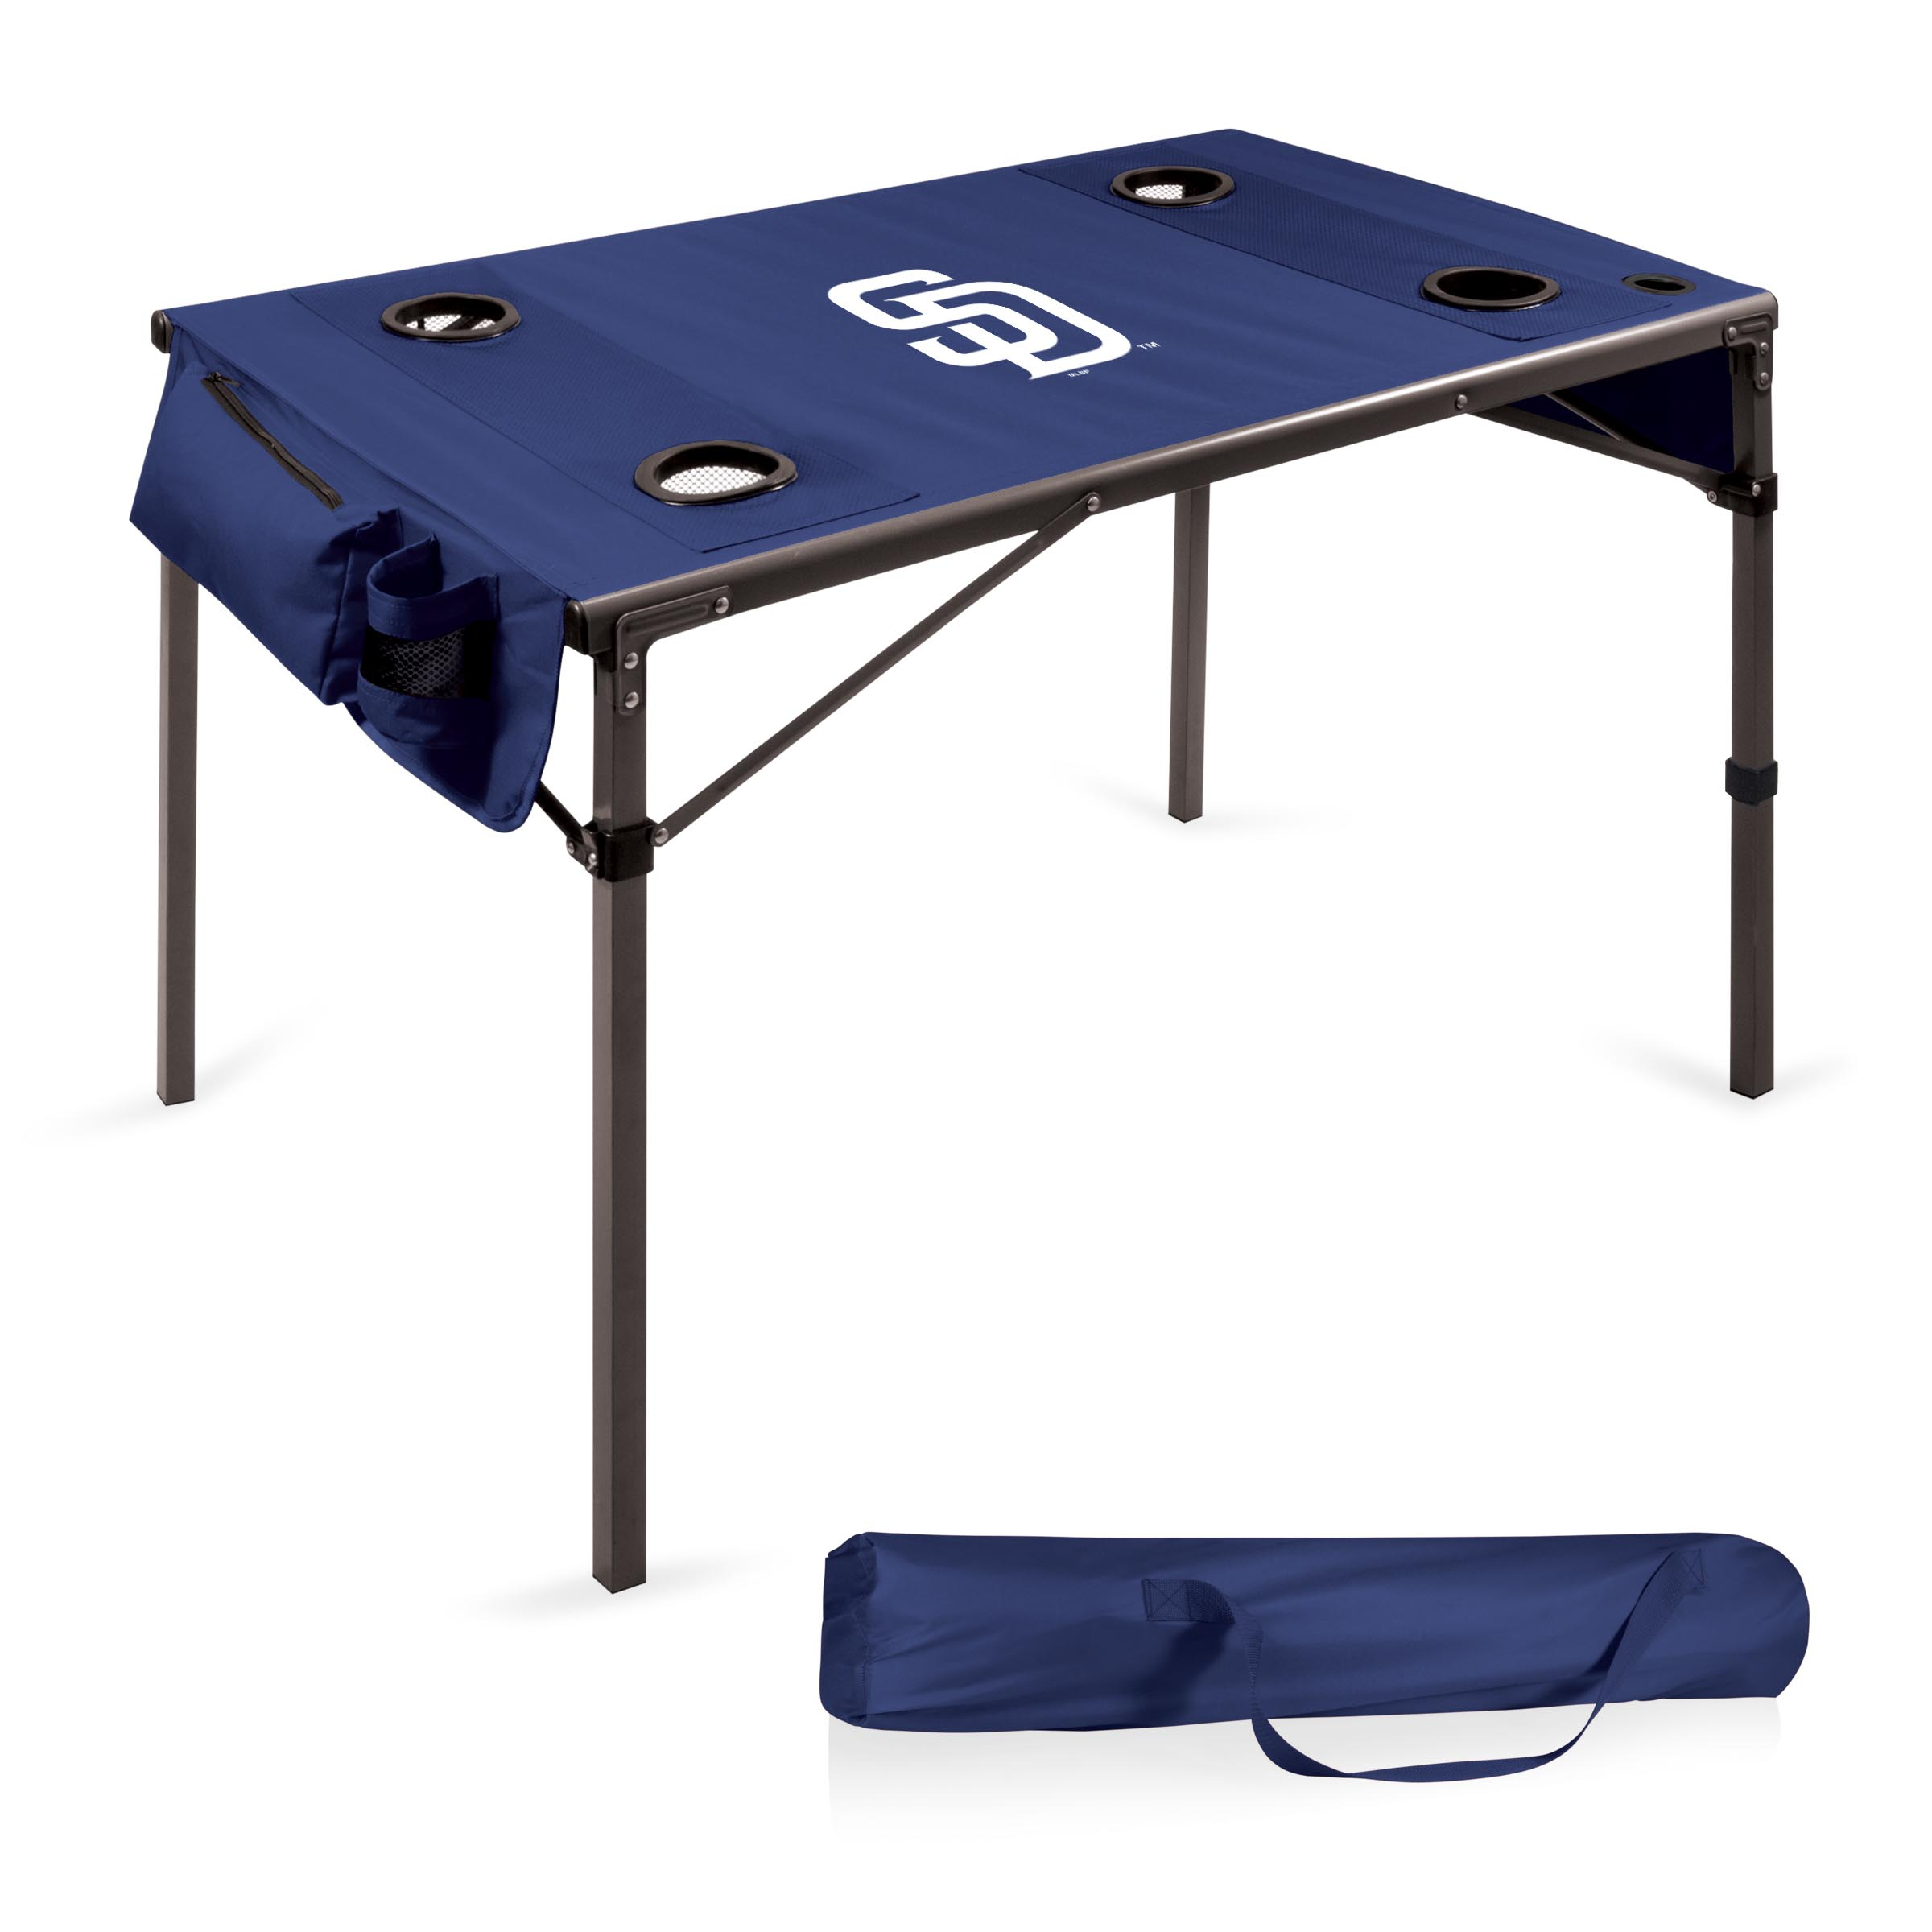 San Diego Padres Portable Folding Travel Table - Navy - No Size